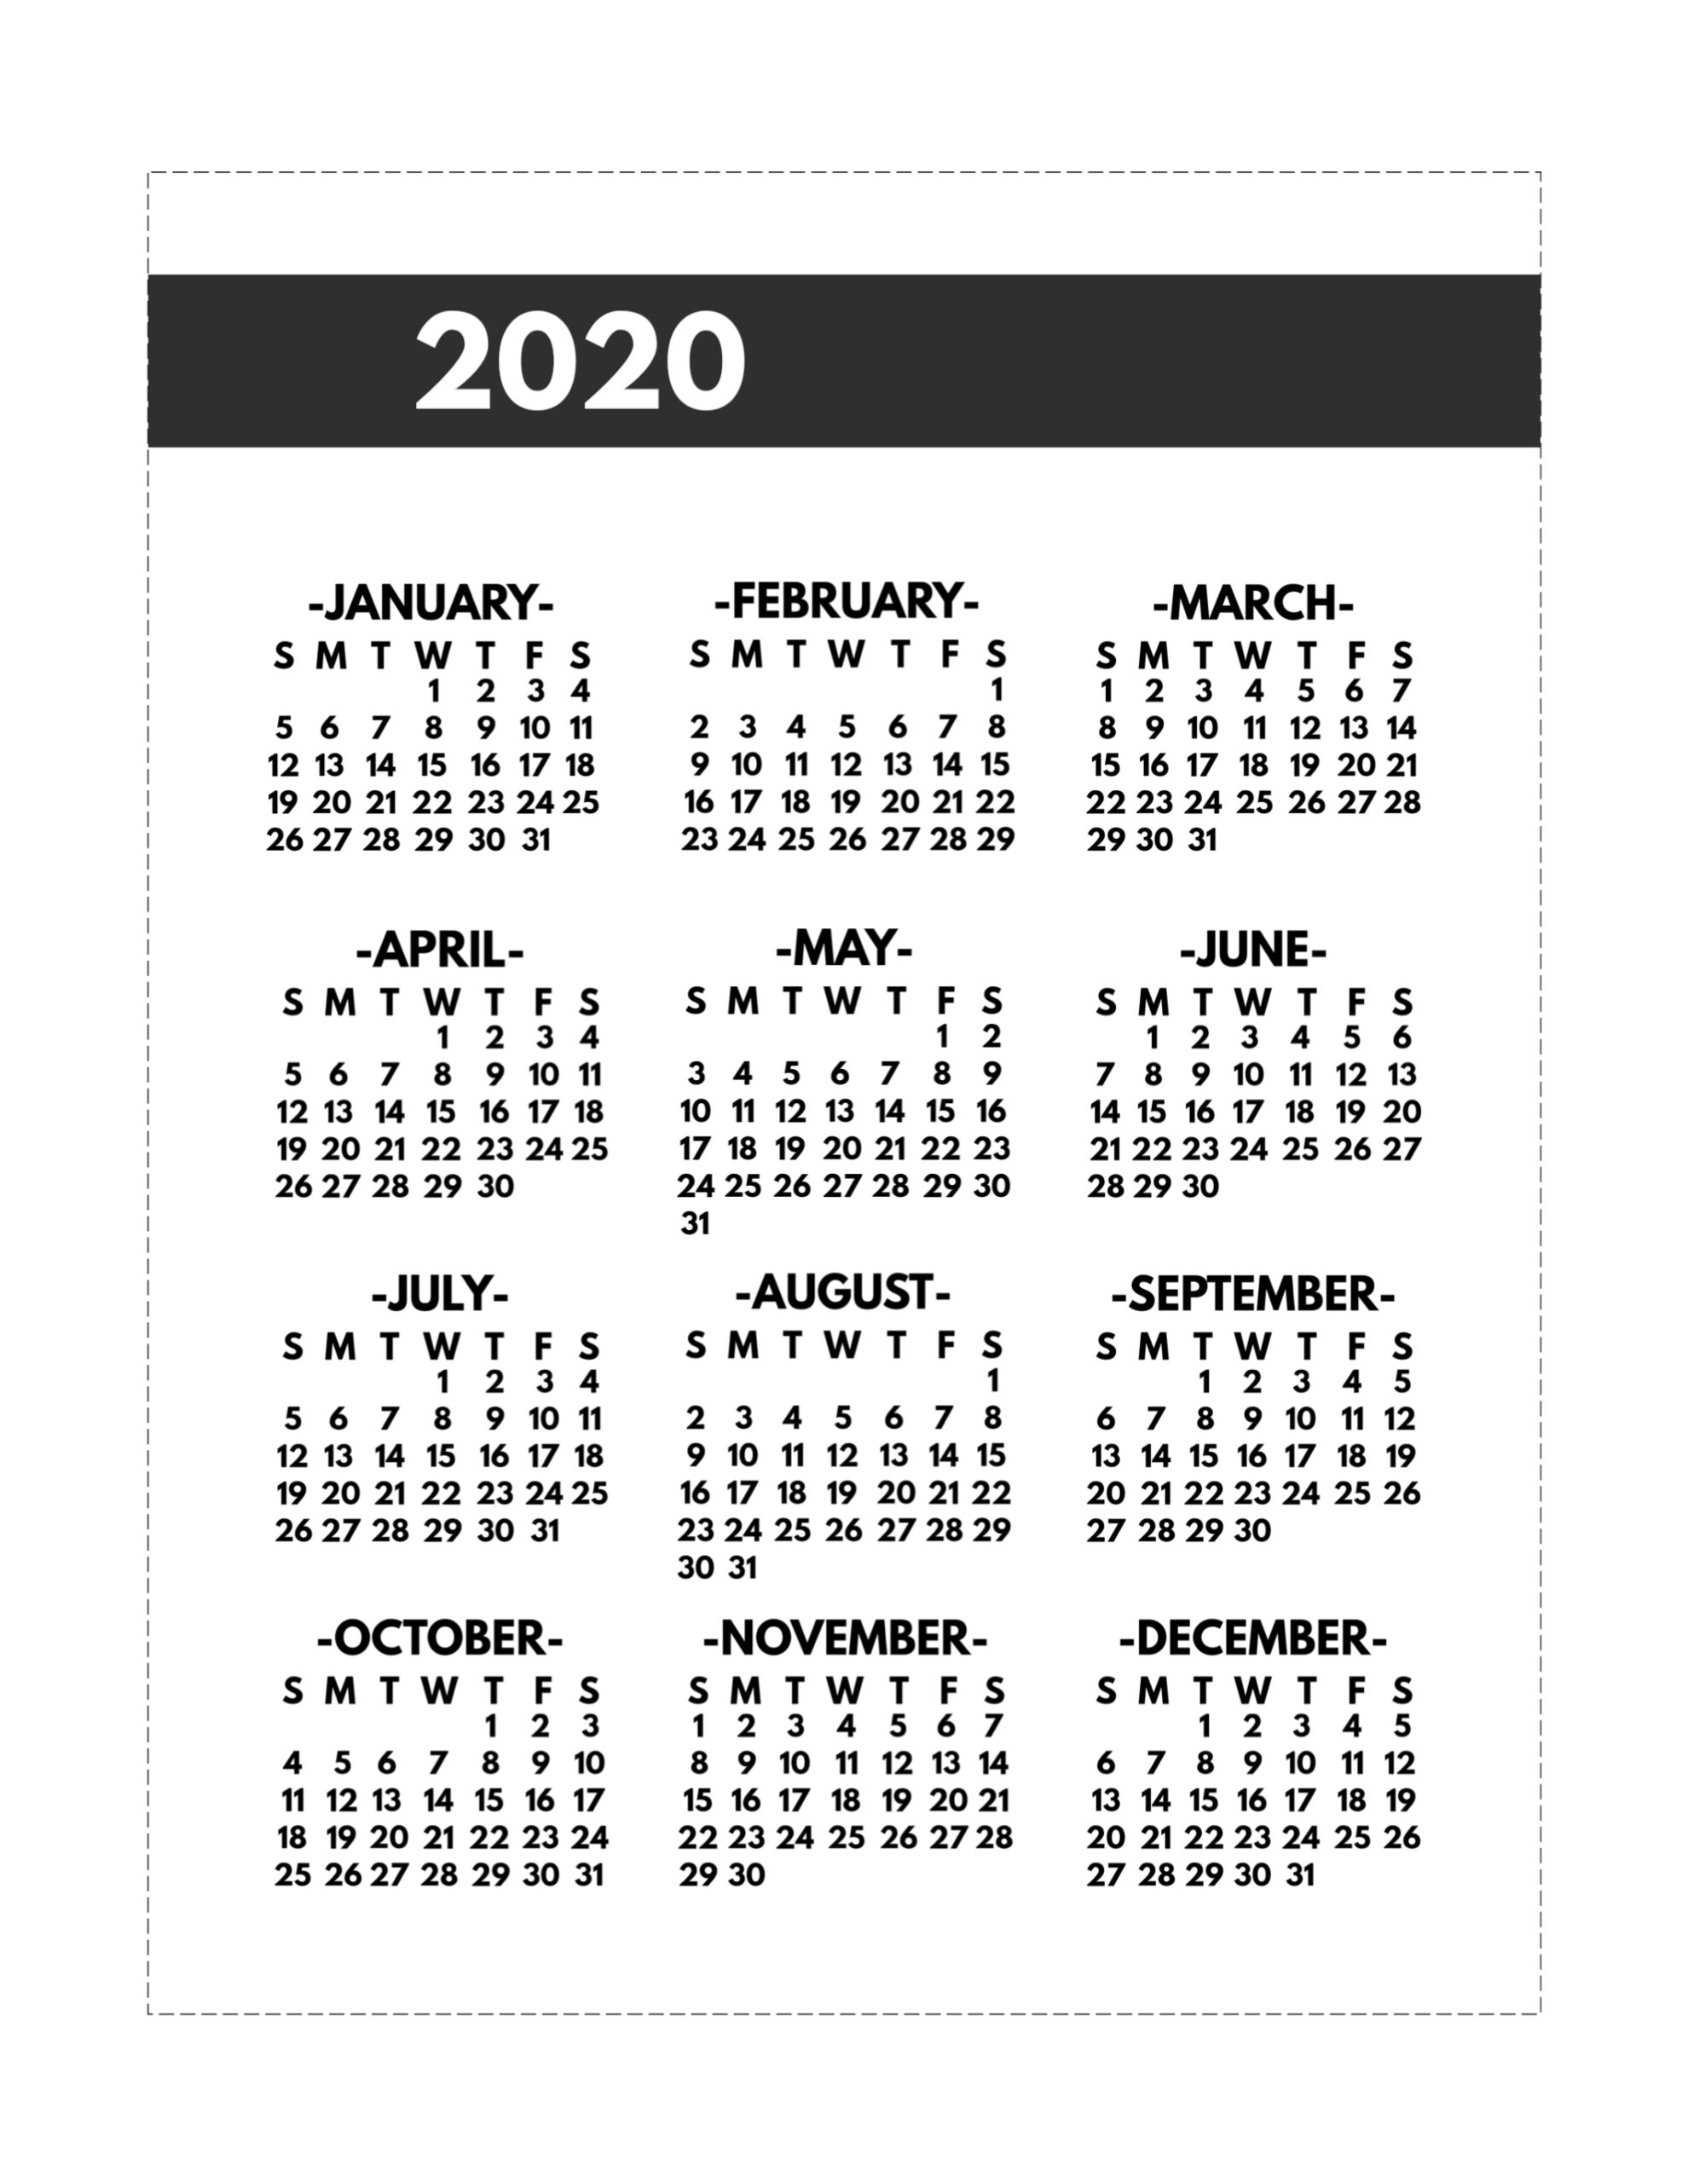 2020 Printable One Page Year At A Glance Calendar - Paper pertaining to 8.5 X 11 Printable 2020 Calendar At A Glance